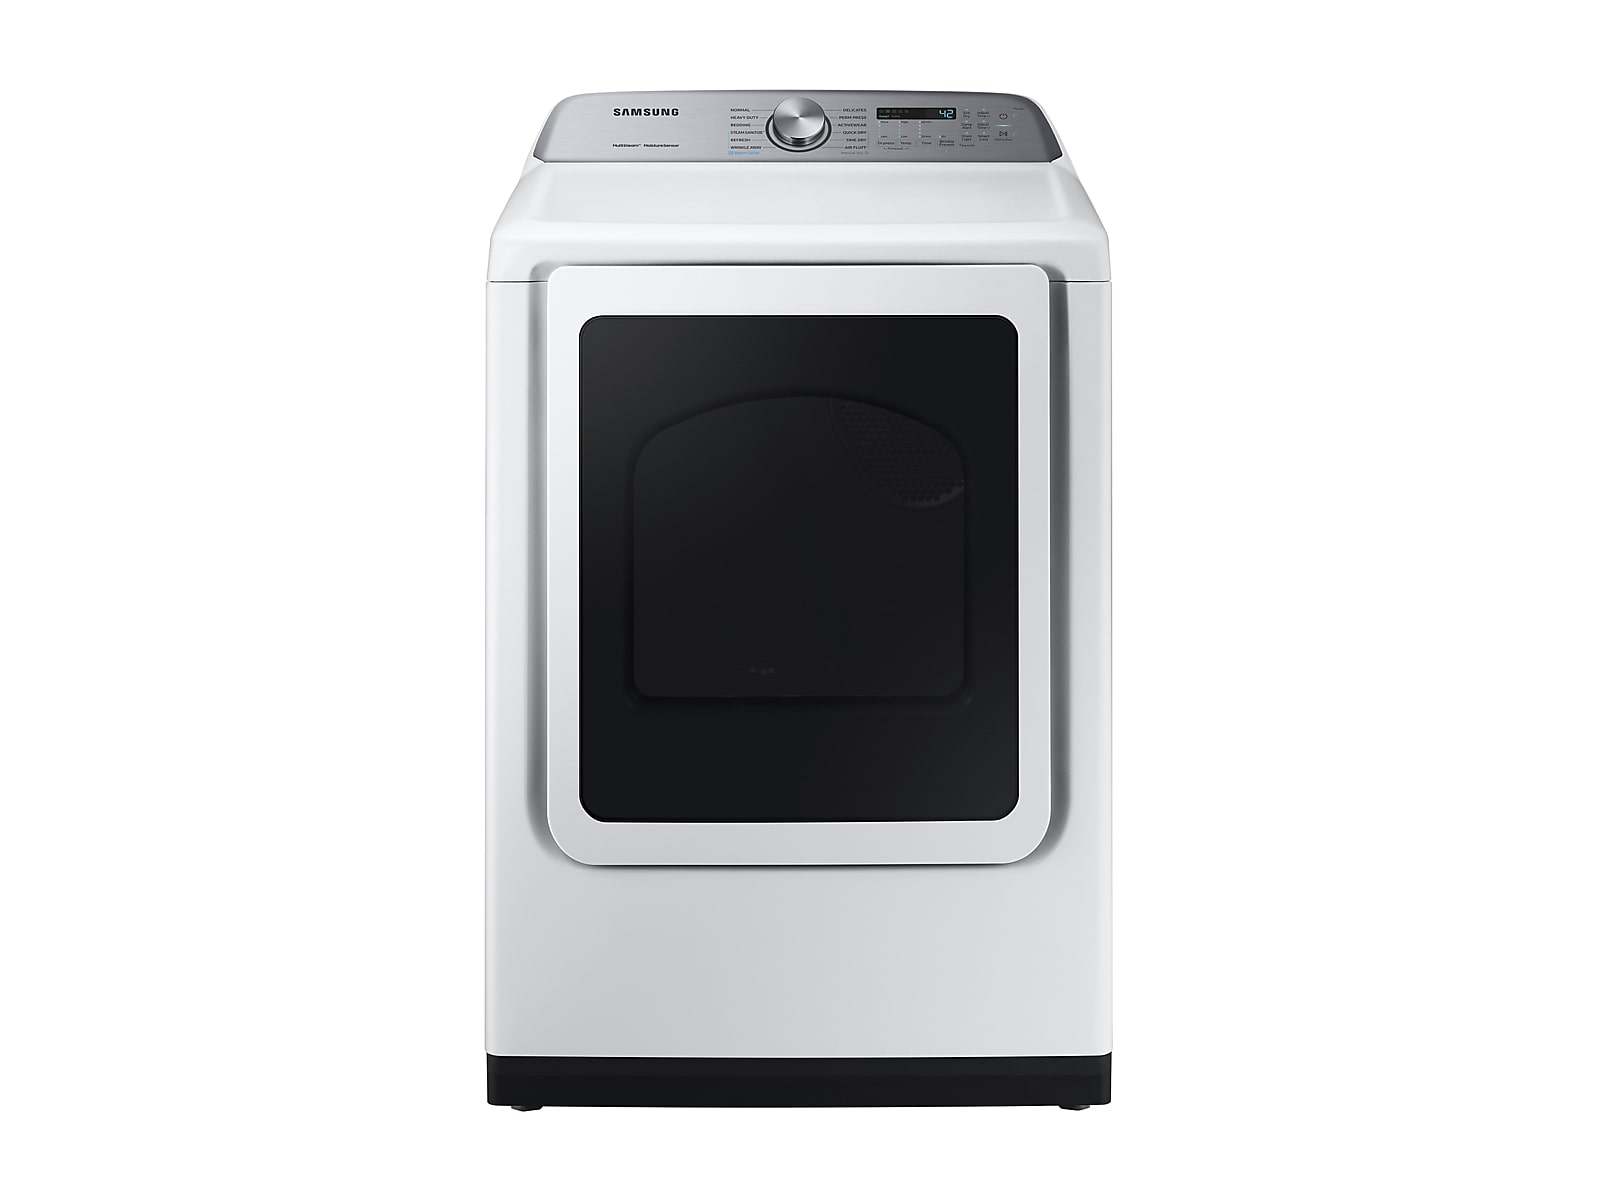 Samsung coupon: Samsung 7.4 cu. ft. Gas Dryer with Steam Sanitize+ in White(DVG50R5400W/A3)